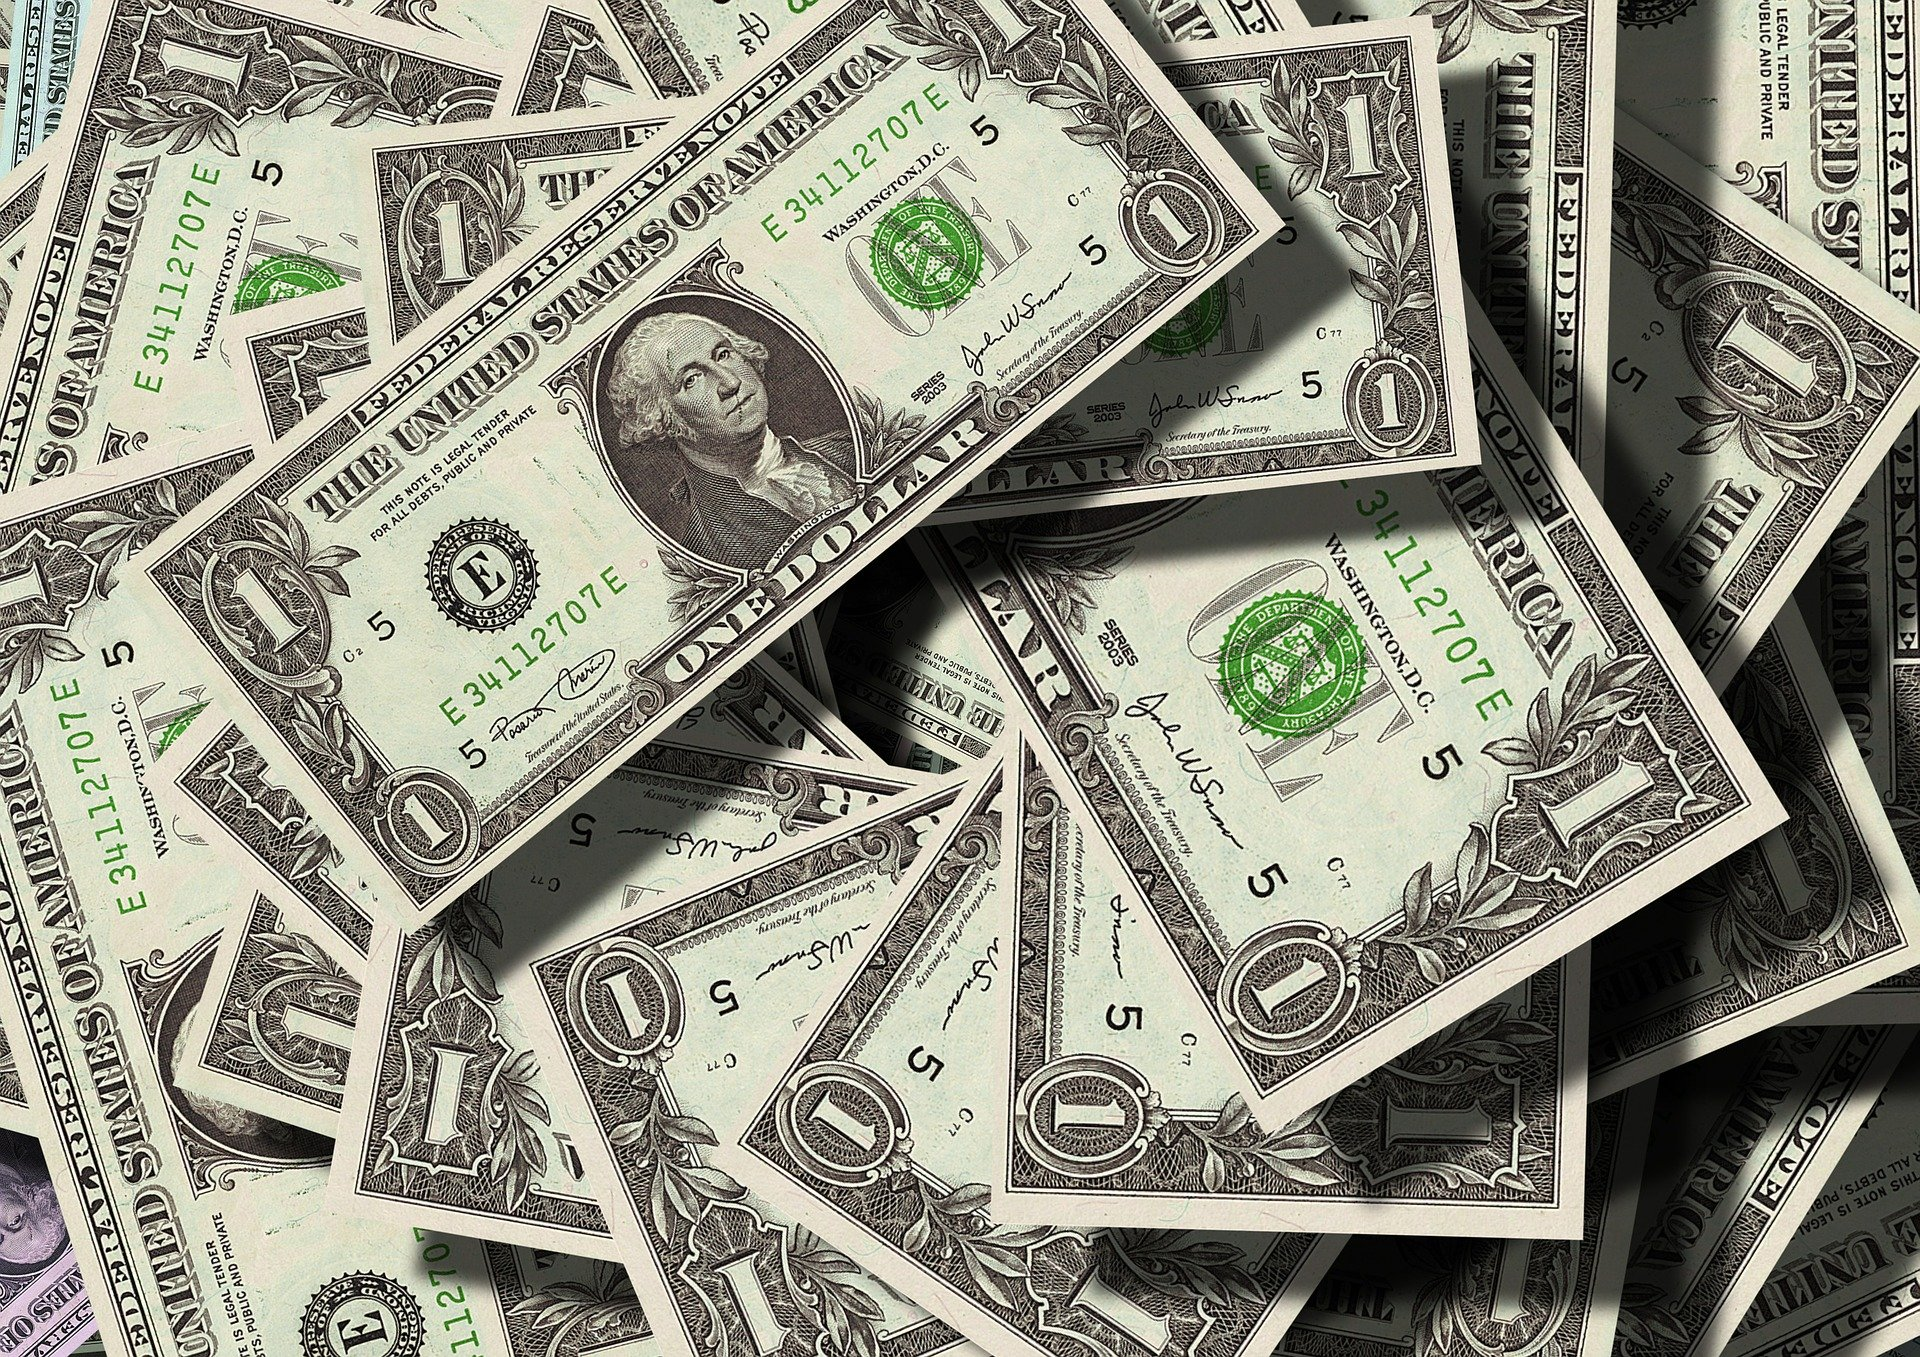 Man Burns $1 Million To Avoid Paying it to His Wife and Child